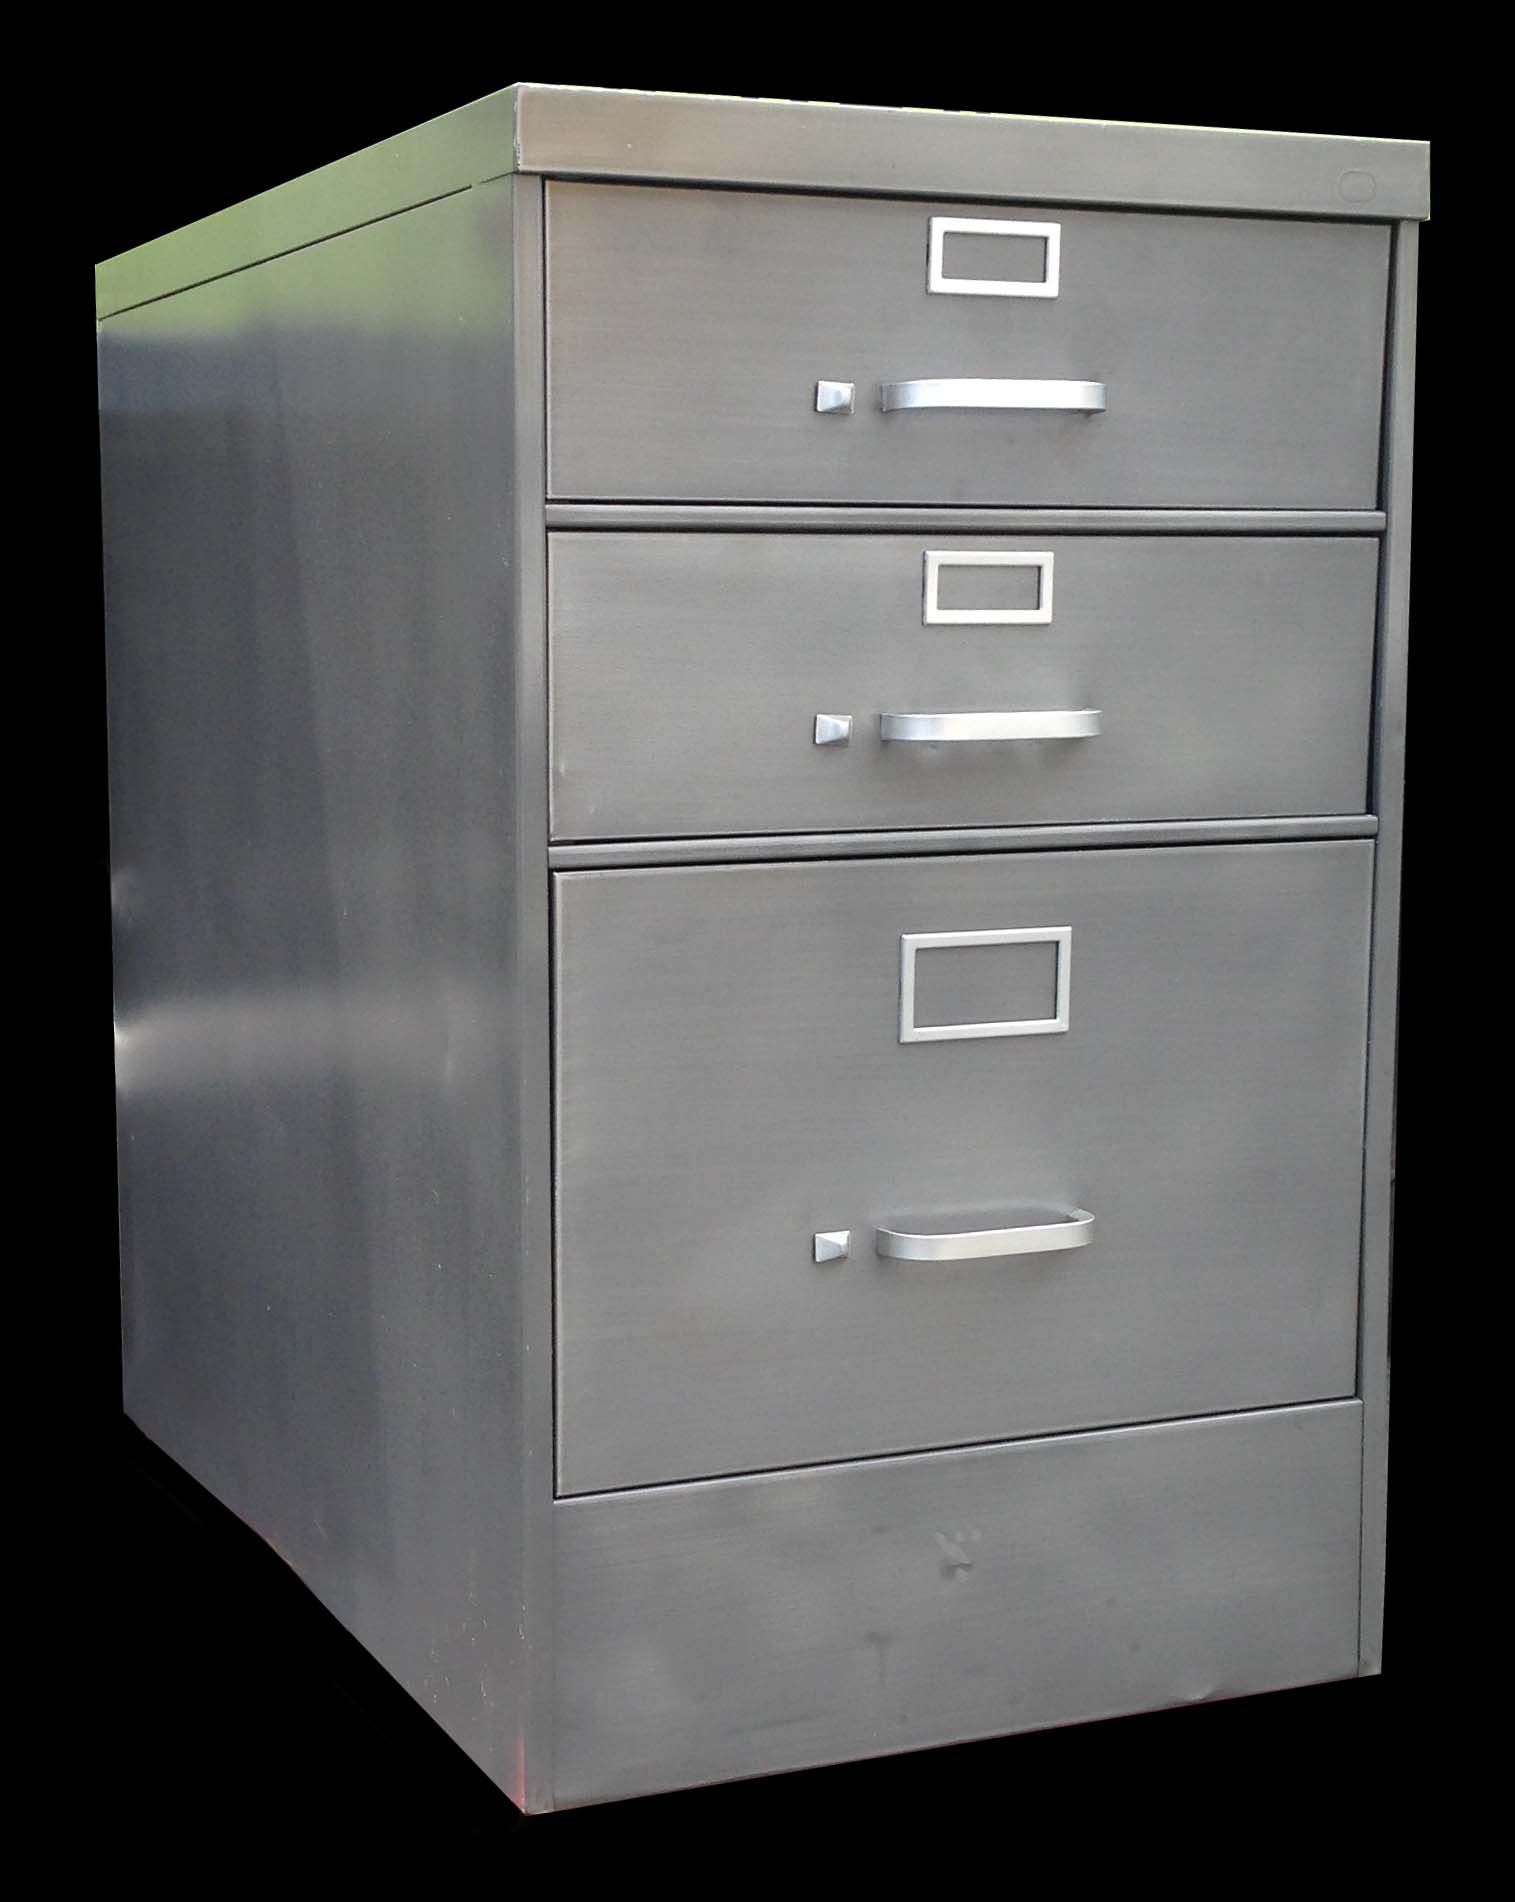 Beautiful Custom Desk Made With Two Letter Size File Cabinets And 30D X 60W Top.  Brush Steel Top And Body With Red Drawers. Vintage Dark Gray Cole Steel  Cabinet With ...